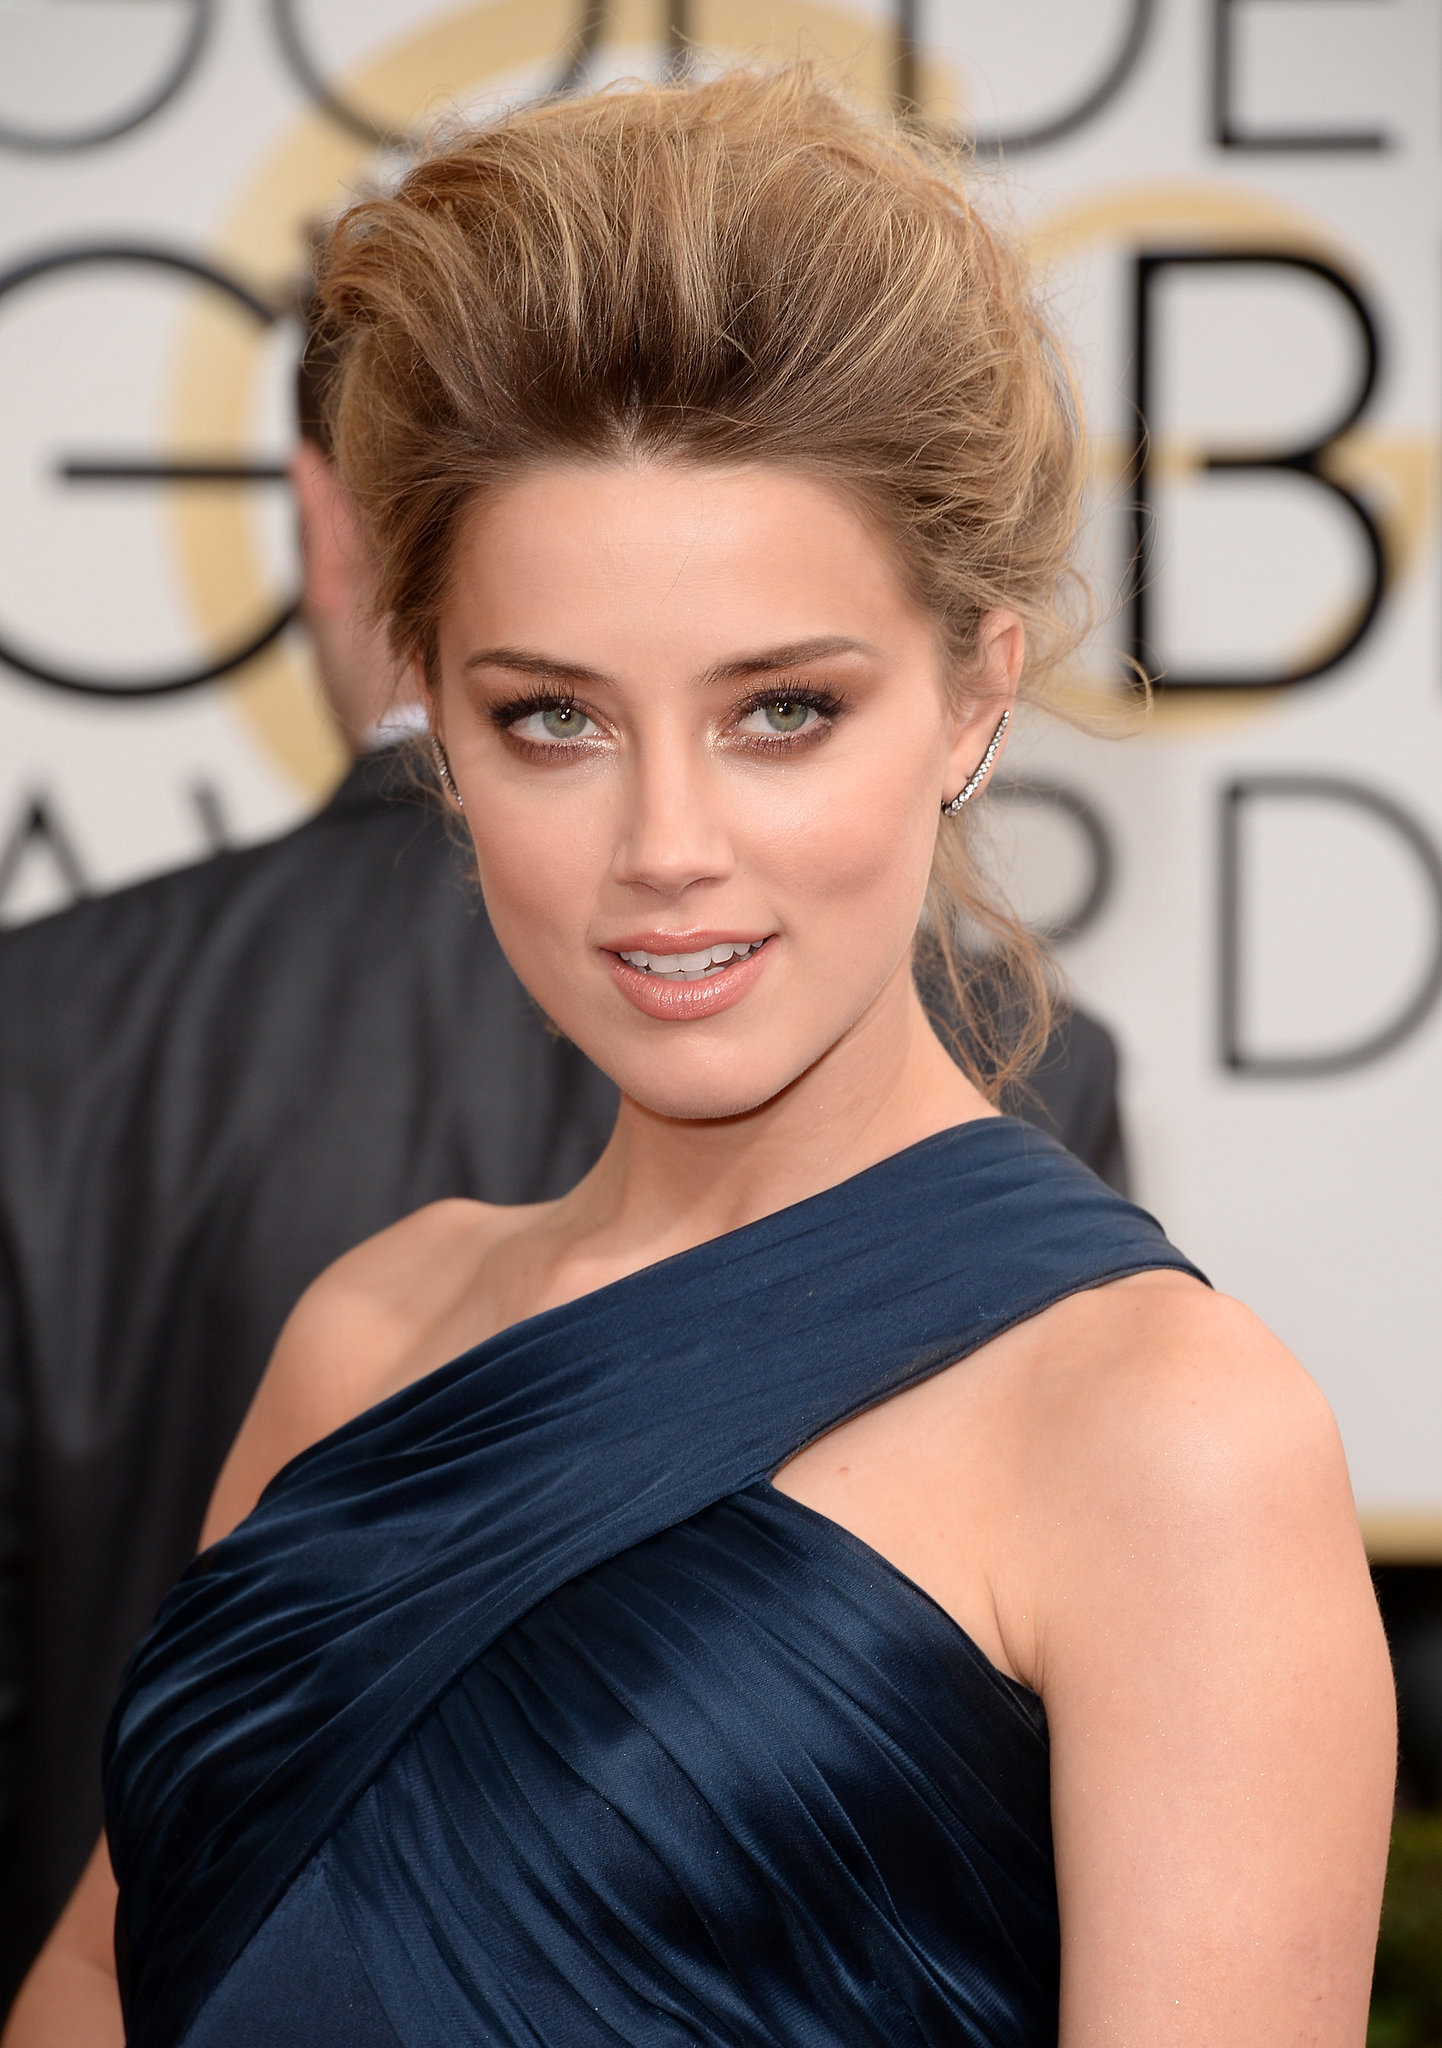 Va-va-voom! Amber Heard's bouffant is what Texas dreams are made of! A bronzed smoky eye, pearlized lips, and brushed brows completed her red carpet look.